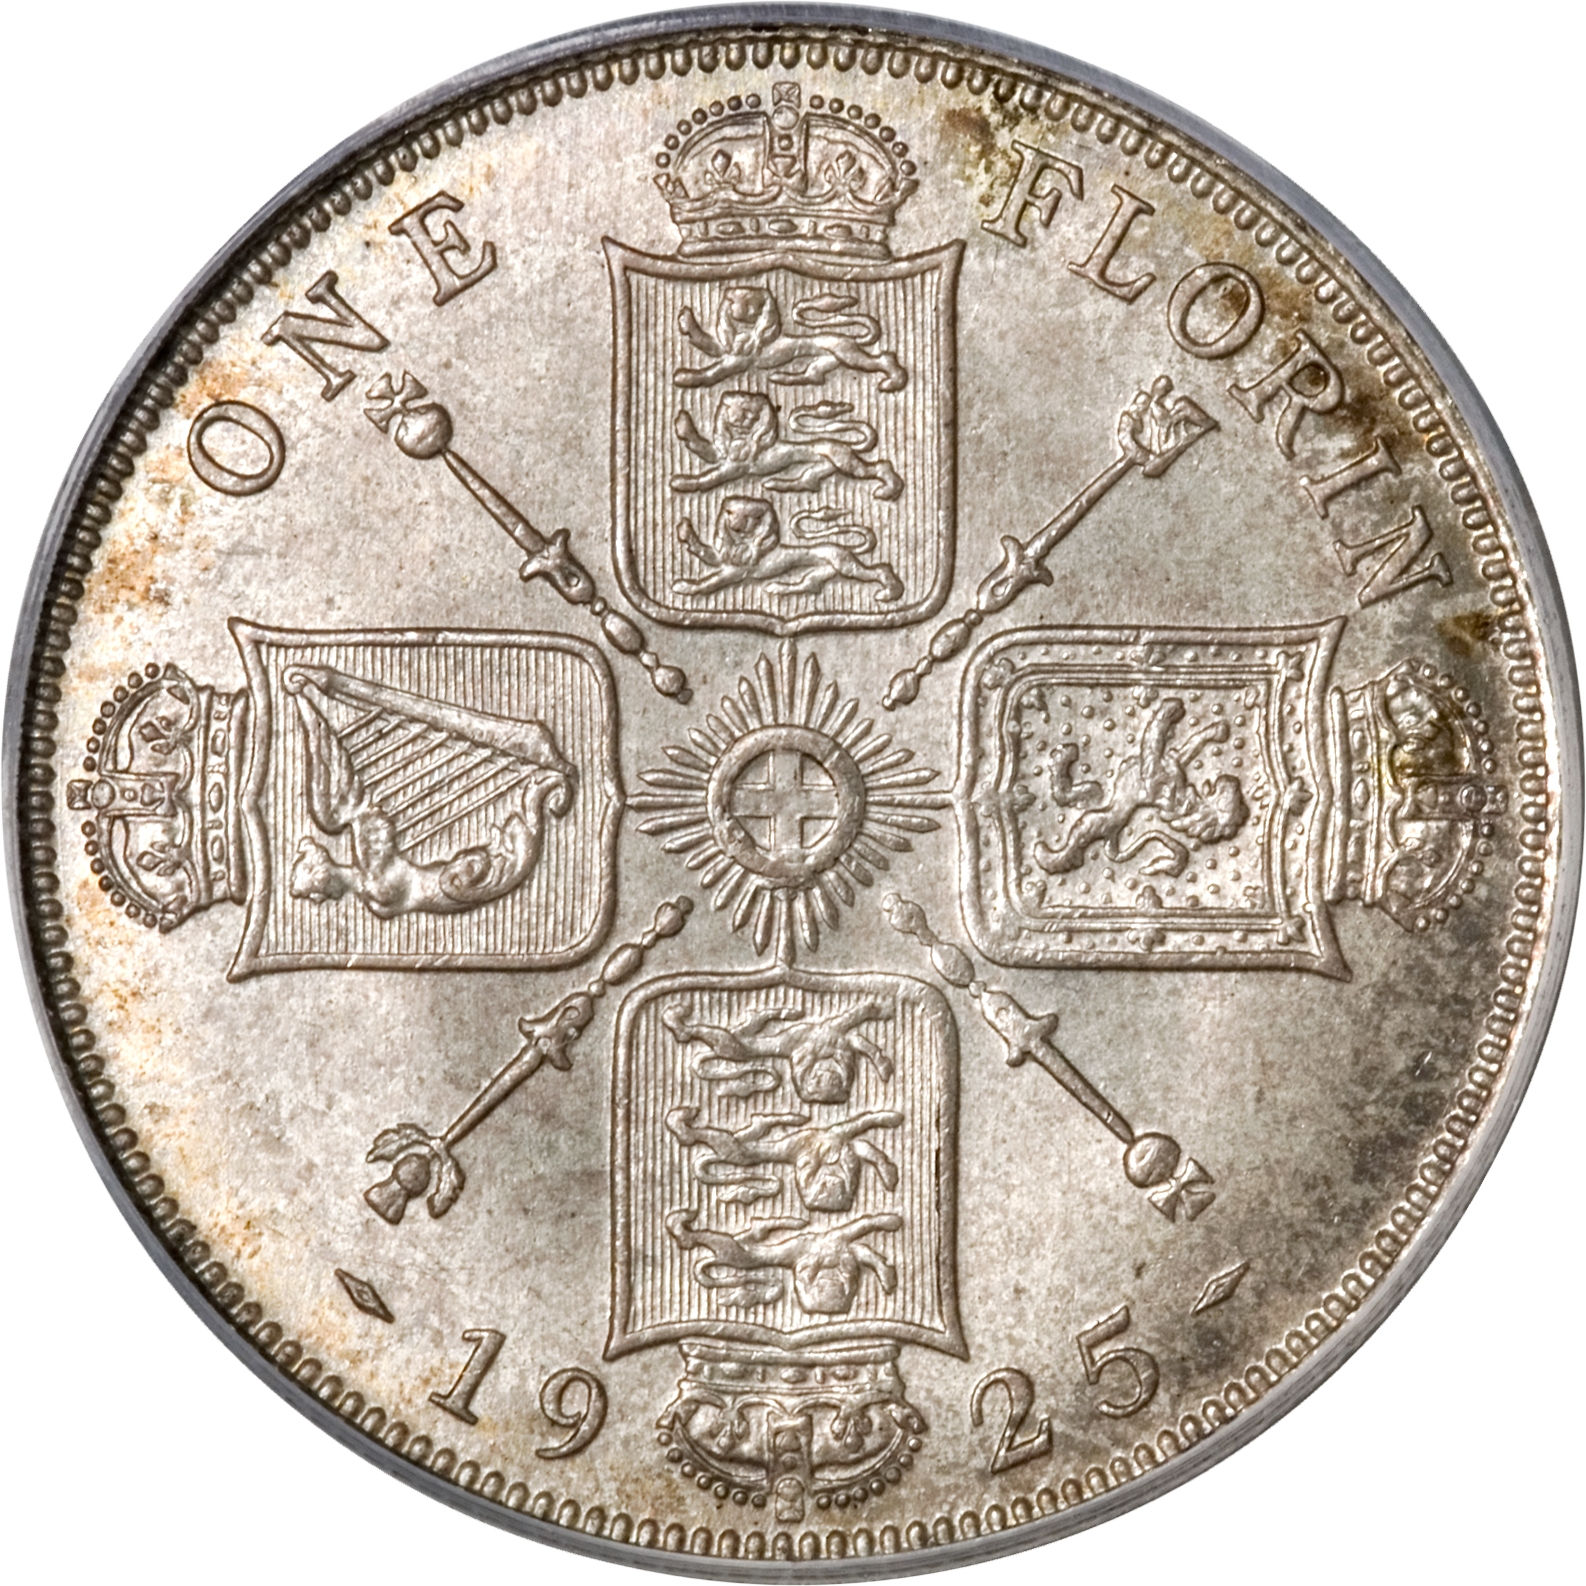 Florin George V First Issue (Debased): Photo Great Britain 1925 florin